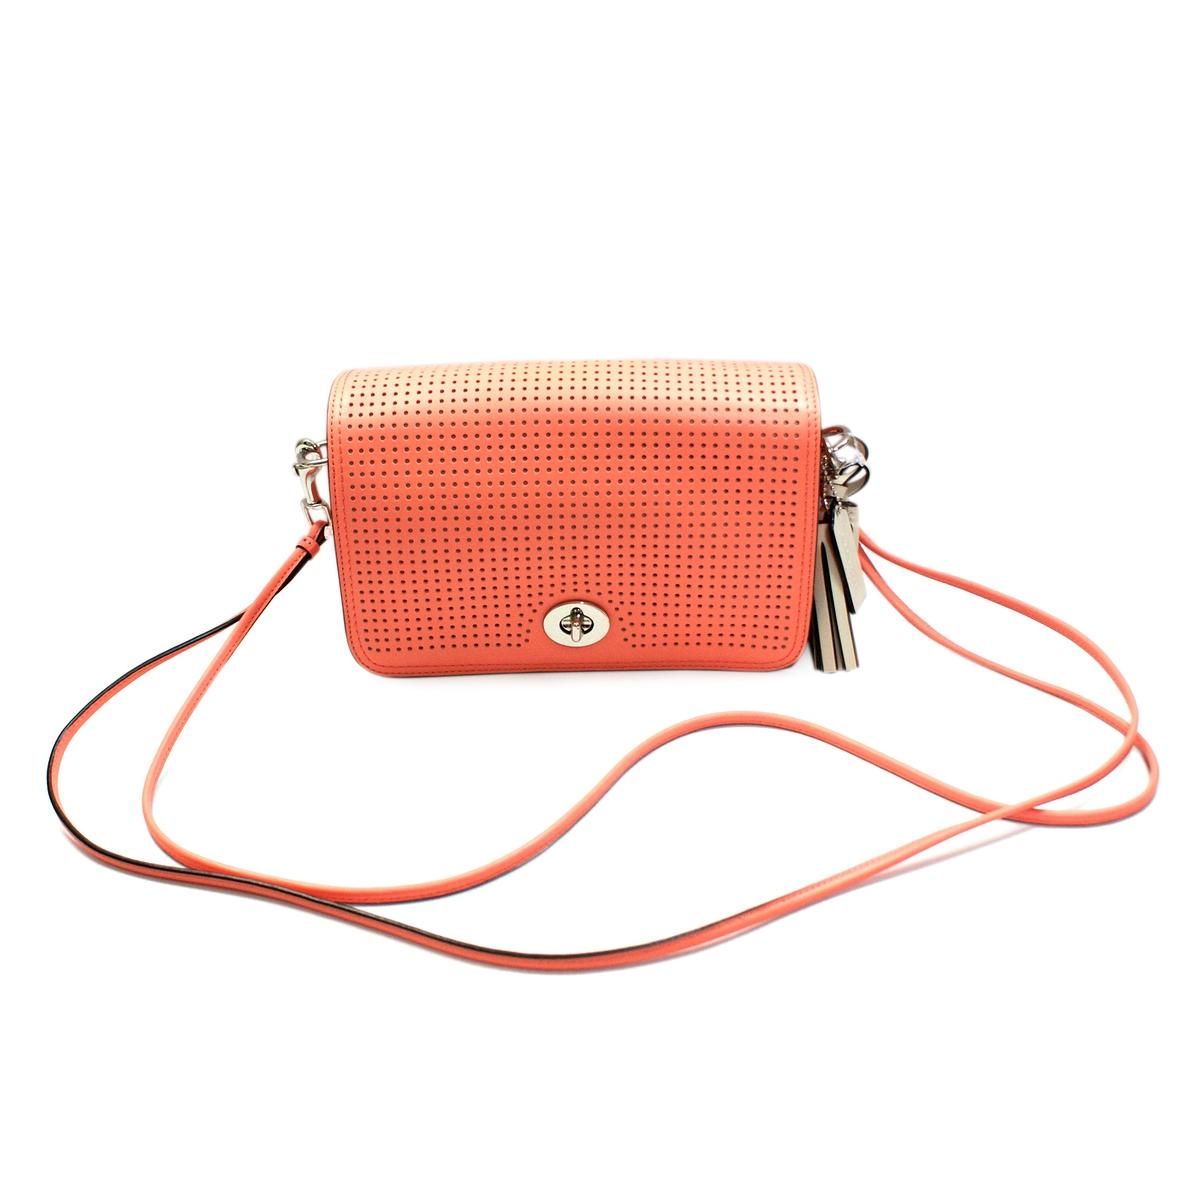 ... best price home coach legacy perforated leather penelope swing  crossbody bag large clutch. click thumbnail 45ea188961266